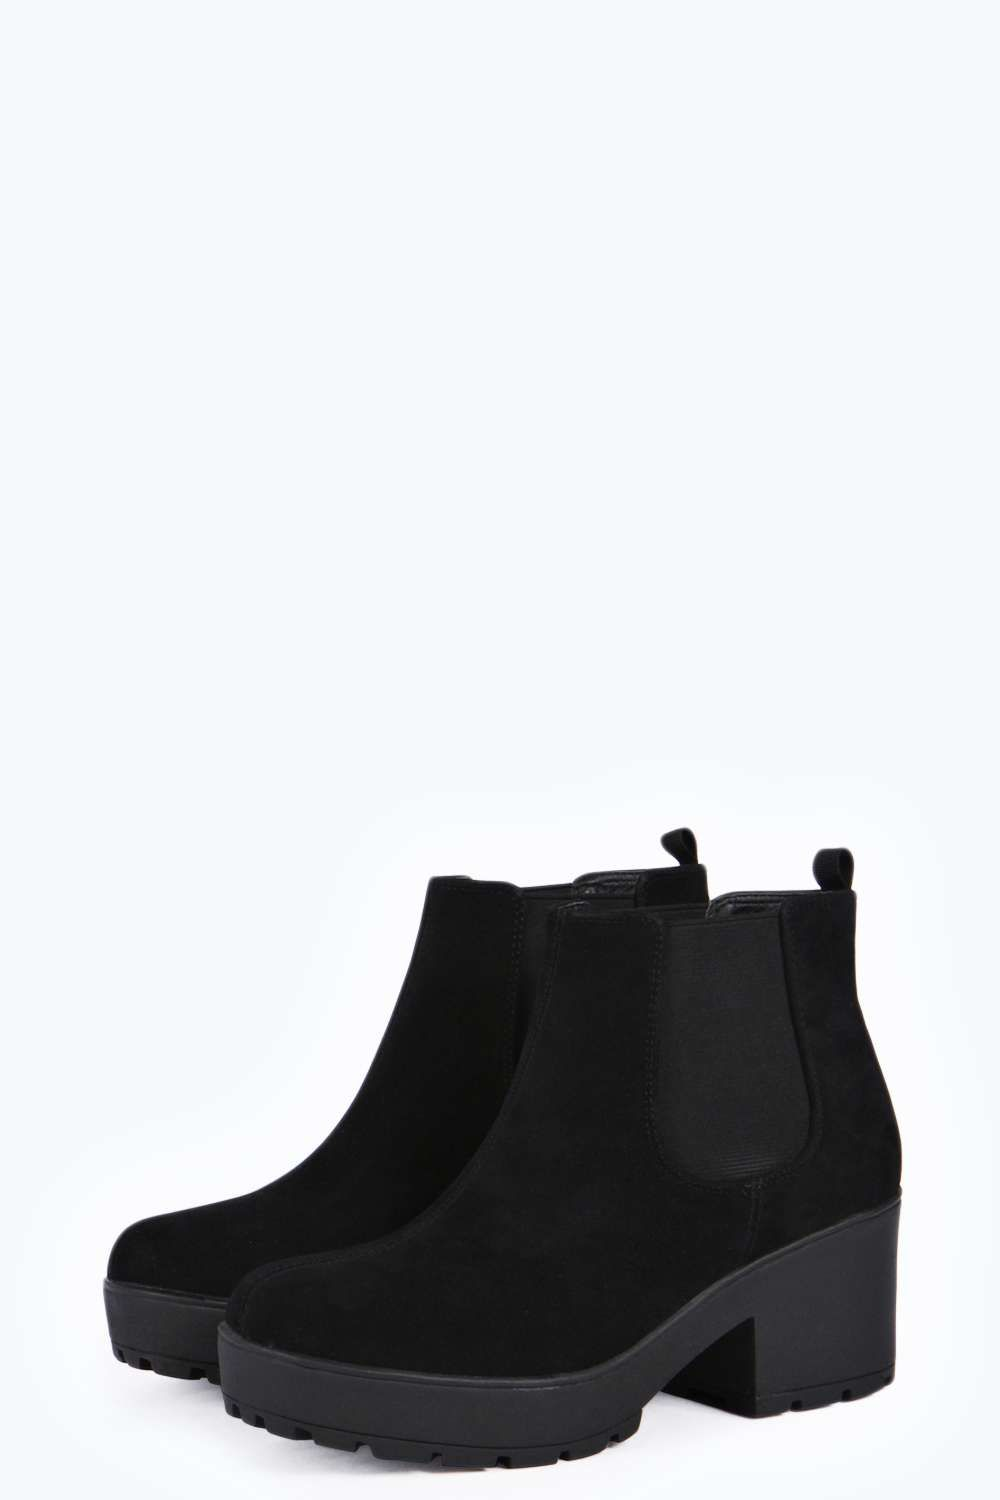 Erin Low Cleated Suedette Boot £30